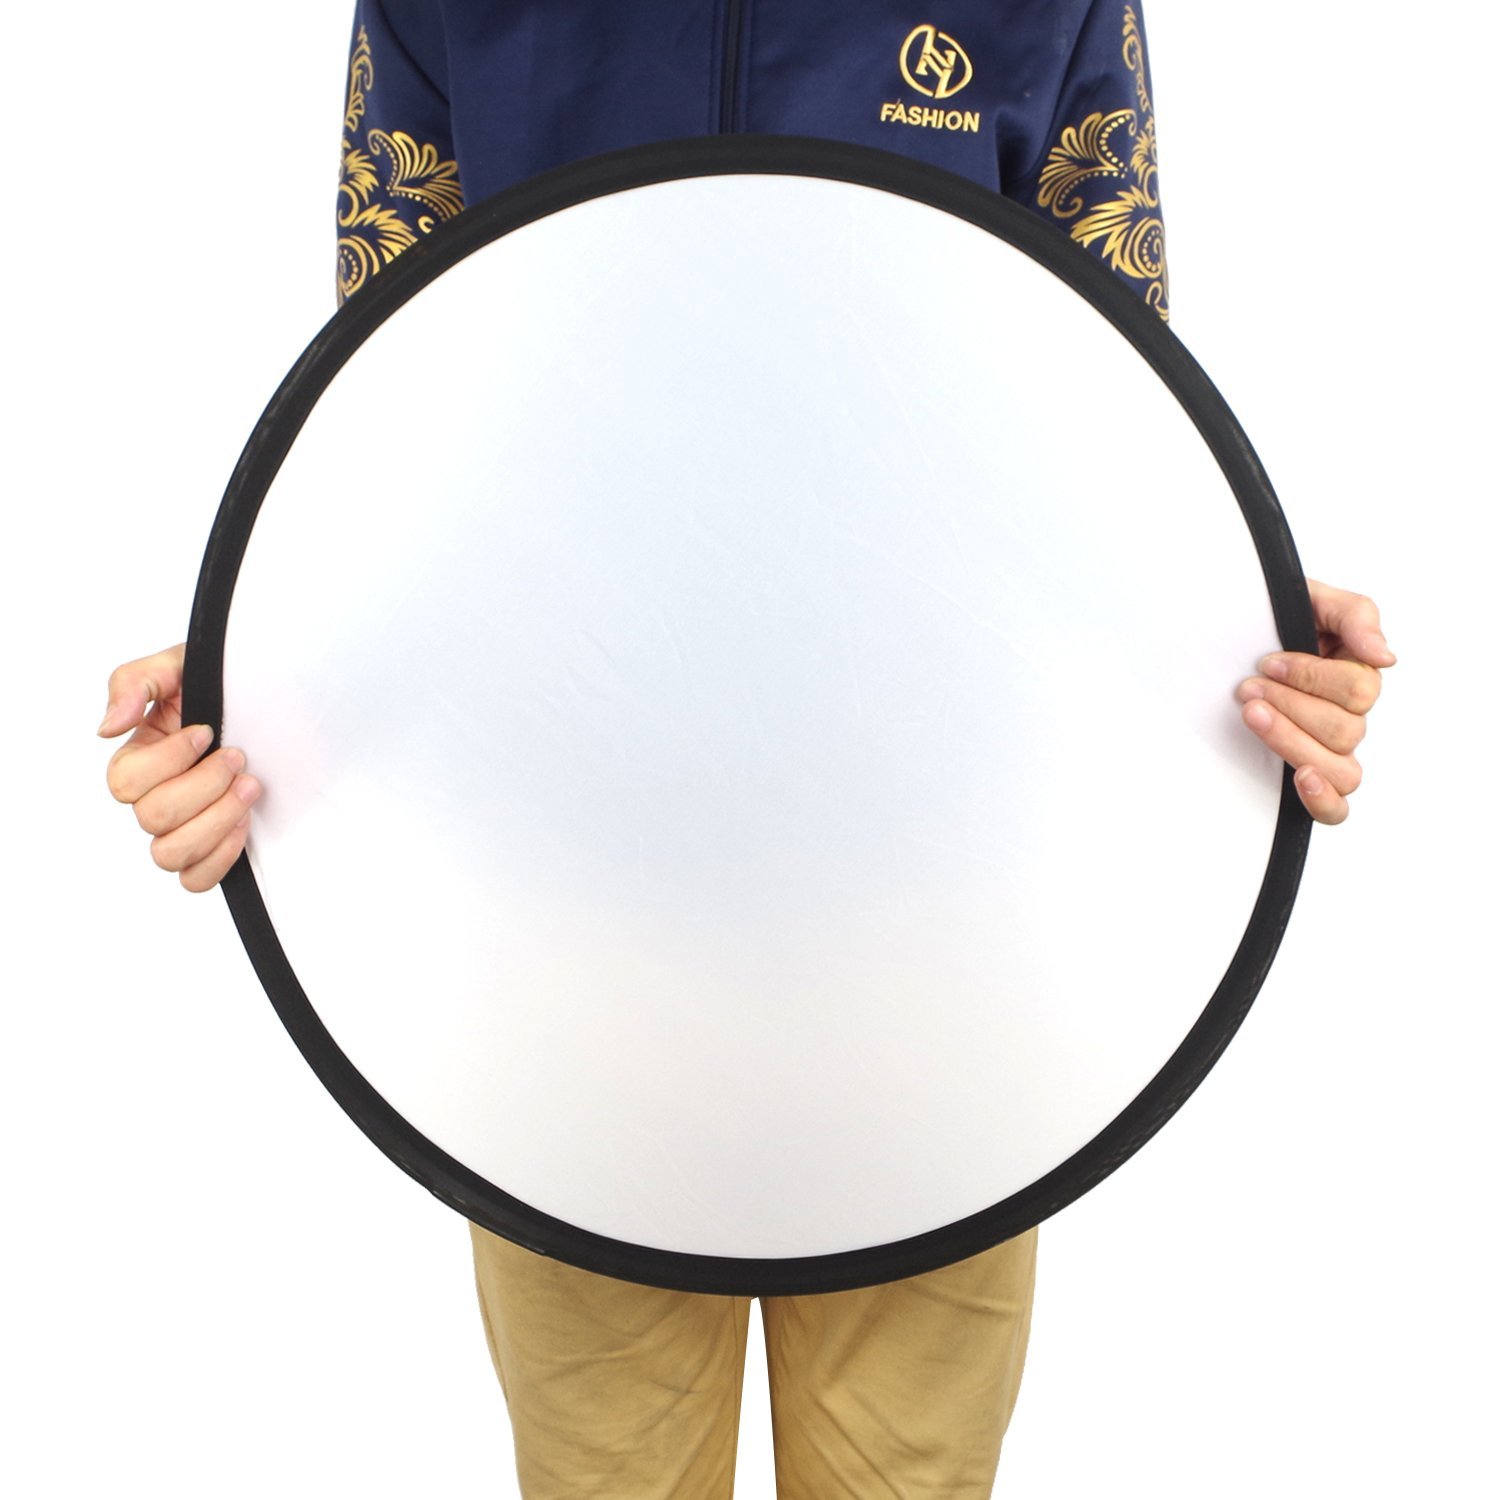 WAAO 24-Inch 60cm 5 in 1(Gold, Silver, White, Black and Translucent) Portable Photography Studio Multi Photo Disc Collapsible Light Reflector